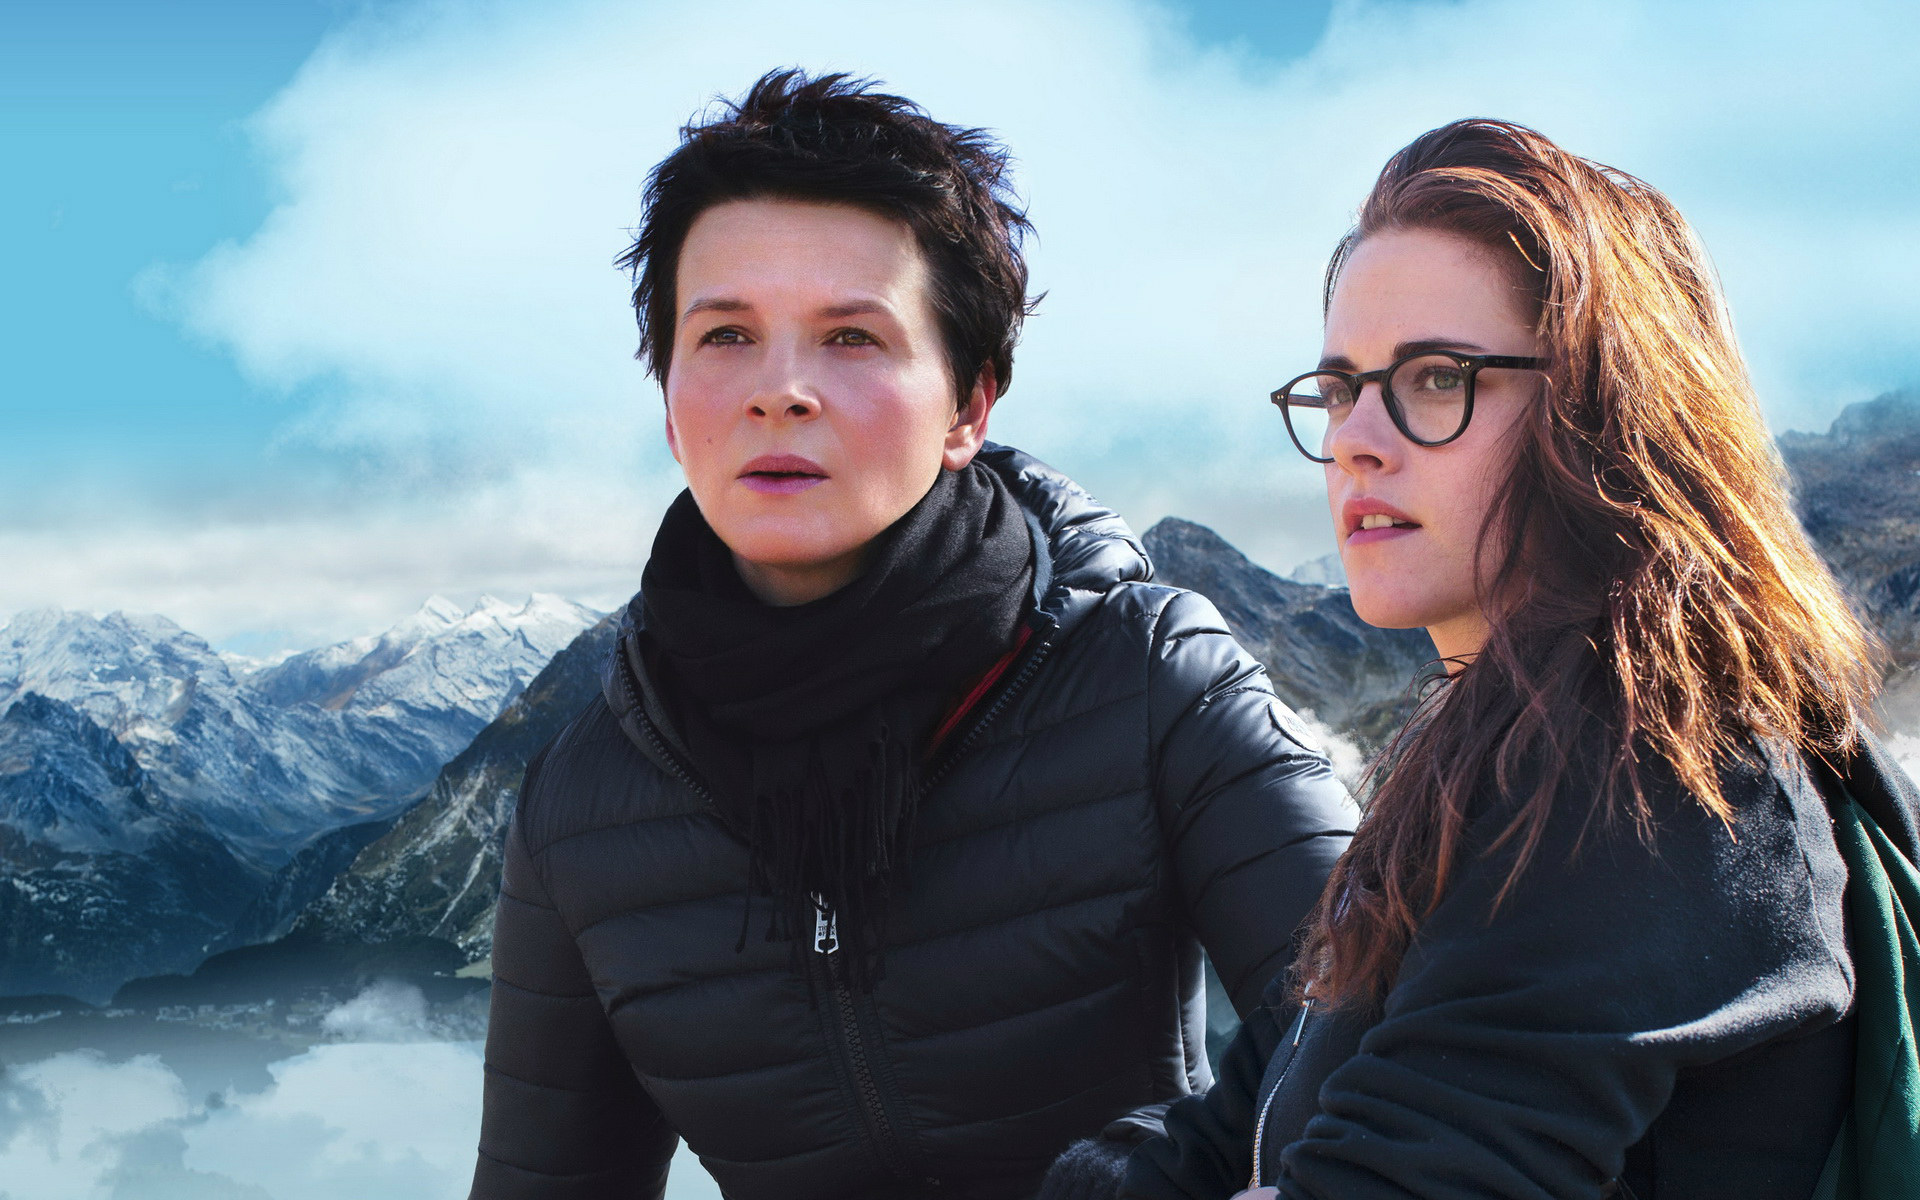 http://lounge.obviousmag.org/lady_day/2015/01/21/imagens/Clouds-Of-Sils-Maria-2014-Movie-HD-Wide.jpg